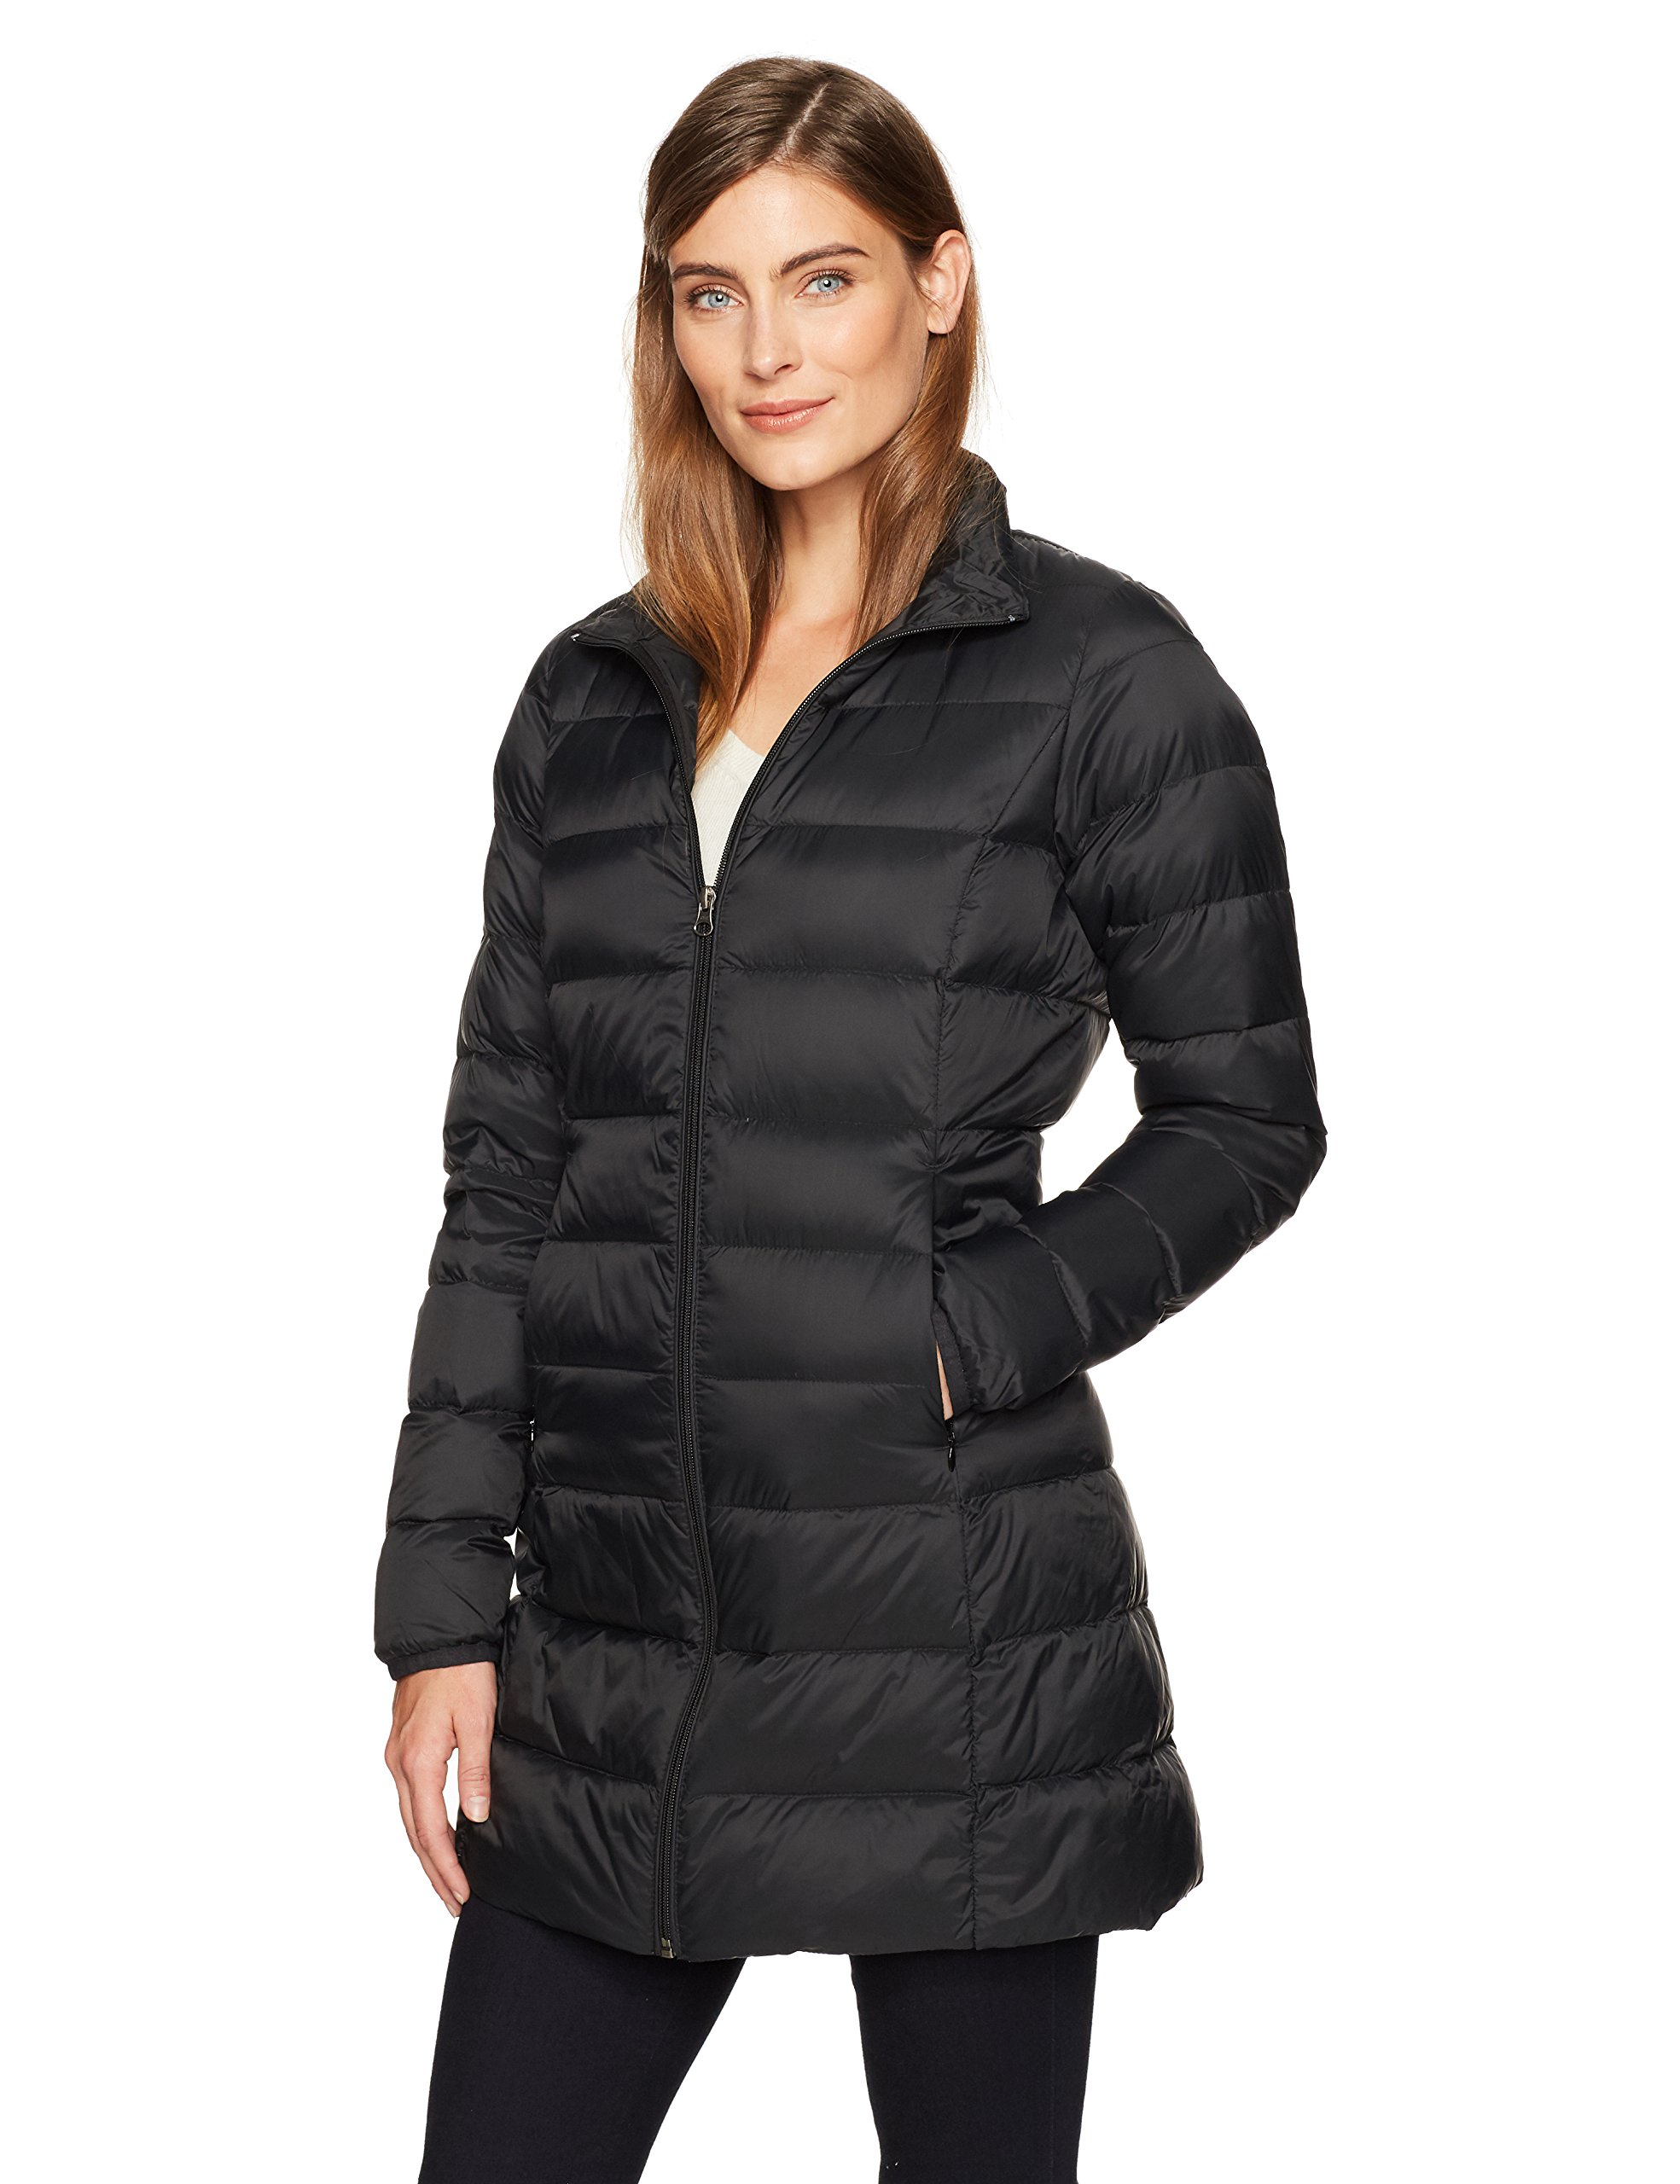 Amazon Essentials Women's Lightweight Water-Resistant Packable Down Coat, Black Caviar, Medium